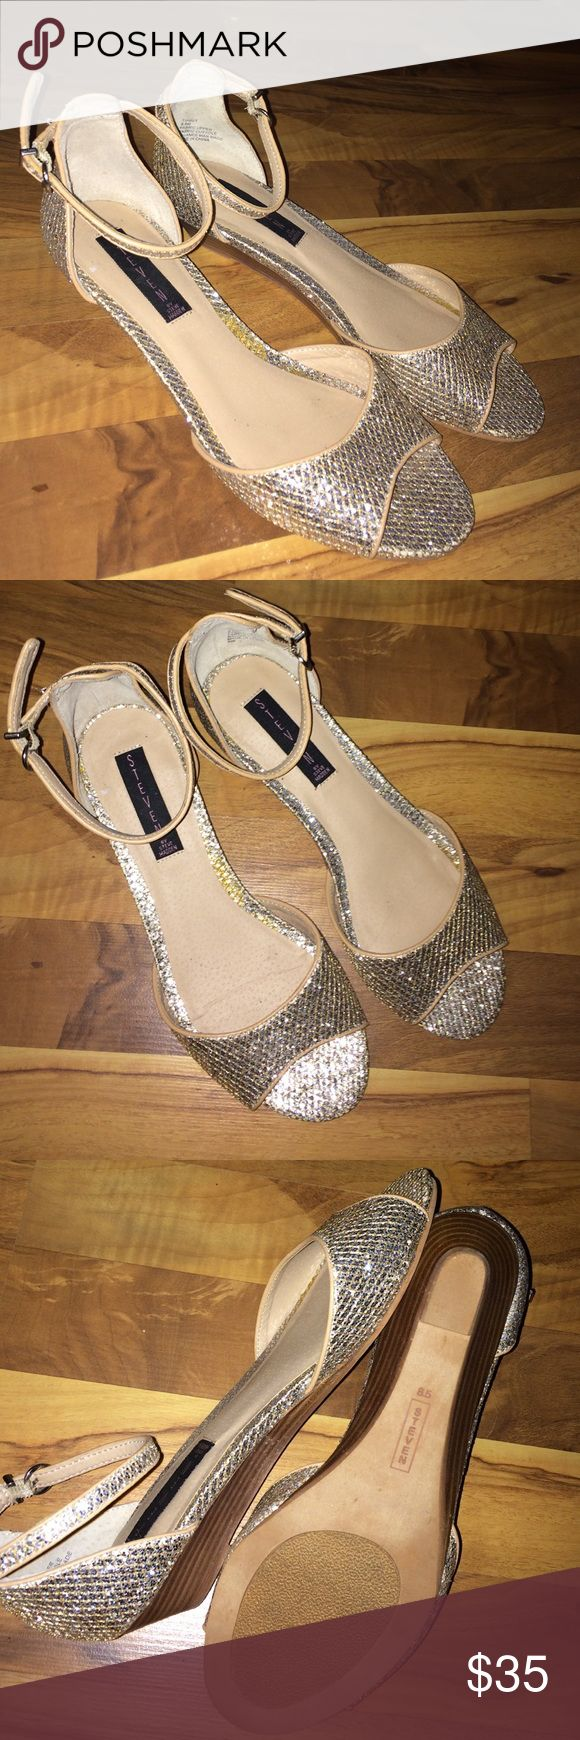 """Gold strappy low wedge sandals Super pretty and feminine gold strappy sandals with low wedge by STEVEN by Steve Madden. Great used condition. Size 8.5. 1.5"""" wedge Steven by Steve Madden Shoes Sandals"""